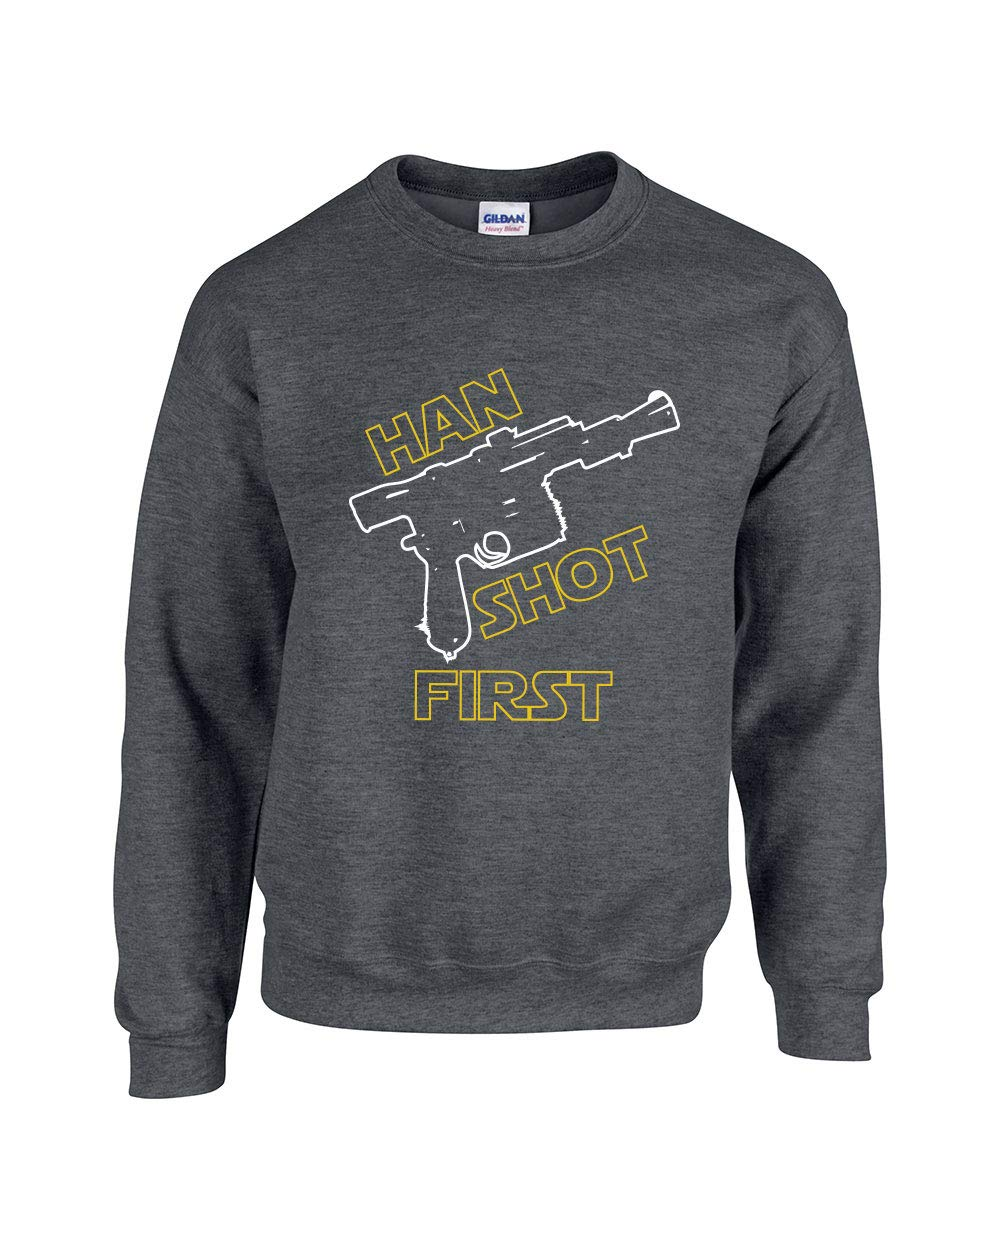 380 Han Shot First Funny Adult Crew 6498 Shirts